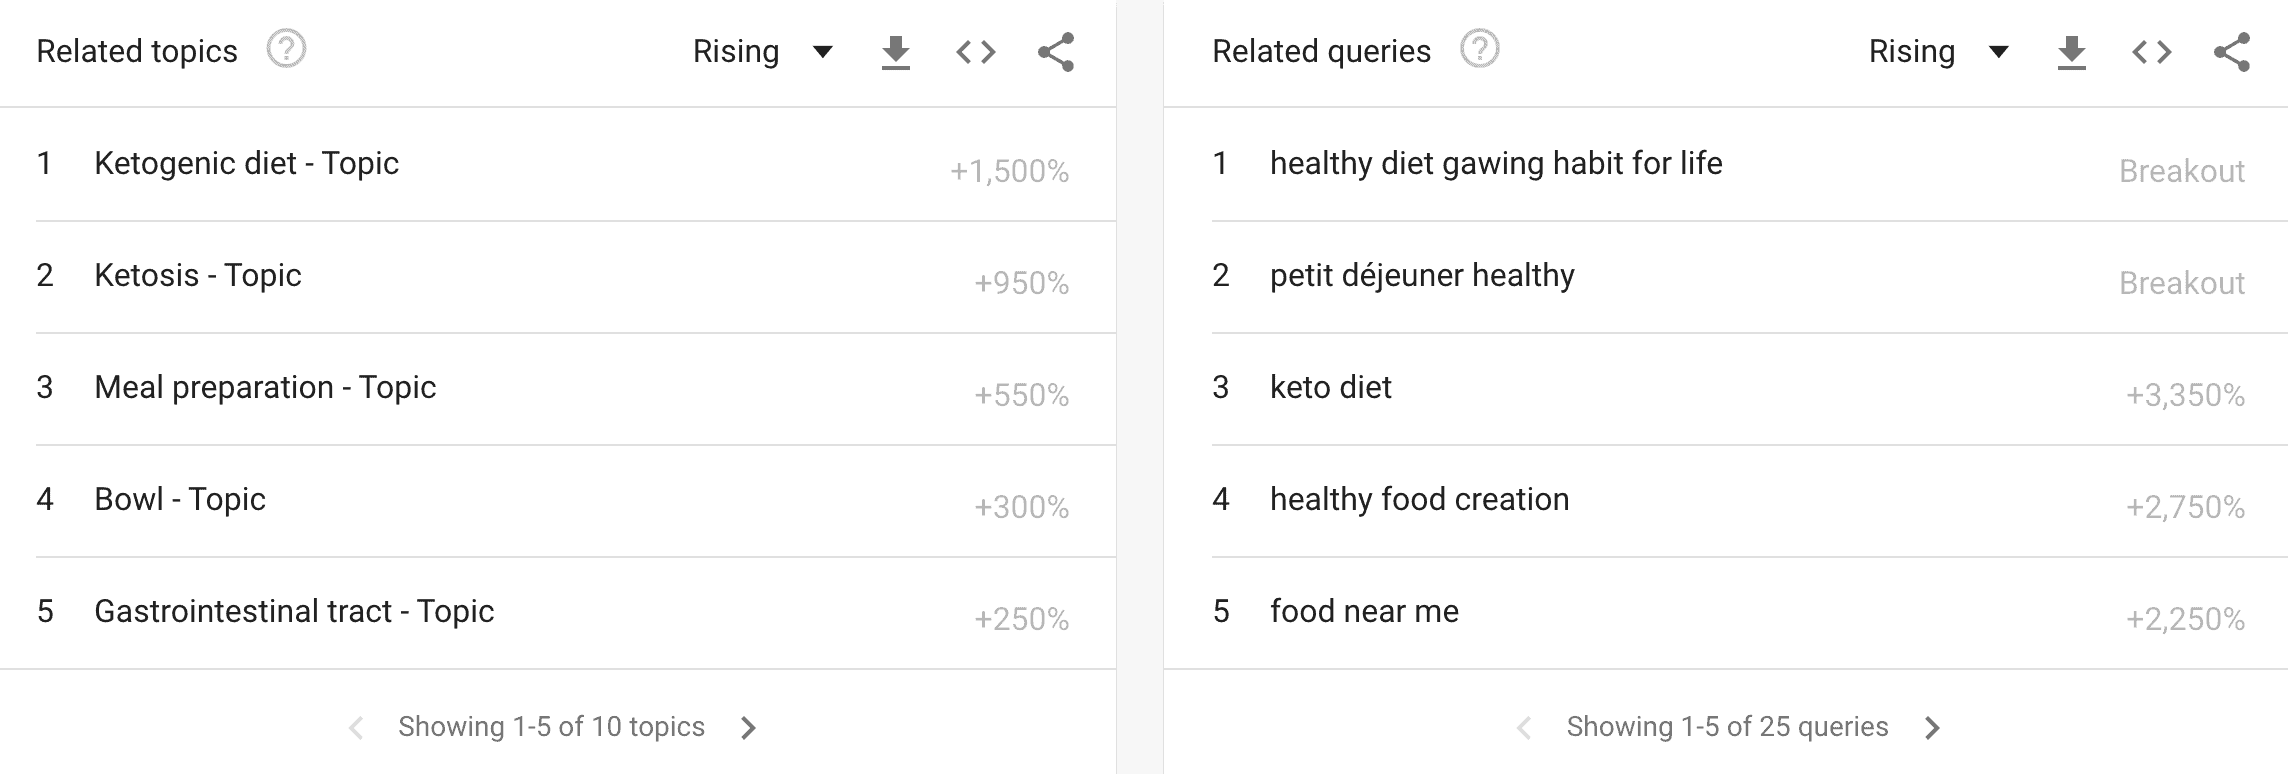 healthy eating related topics